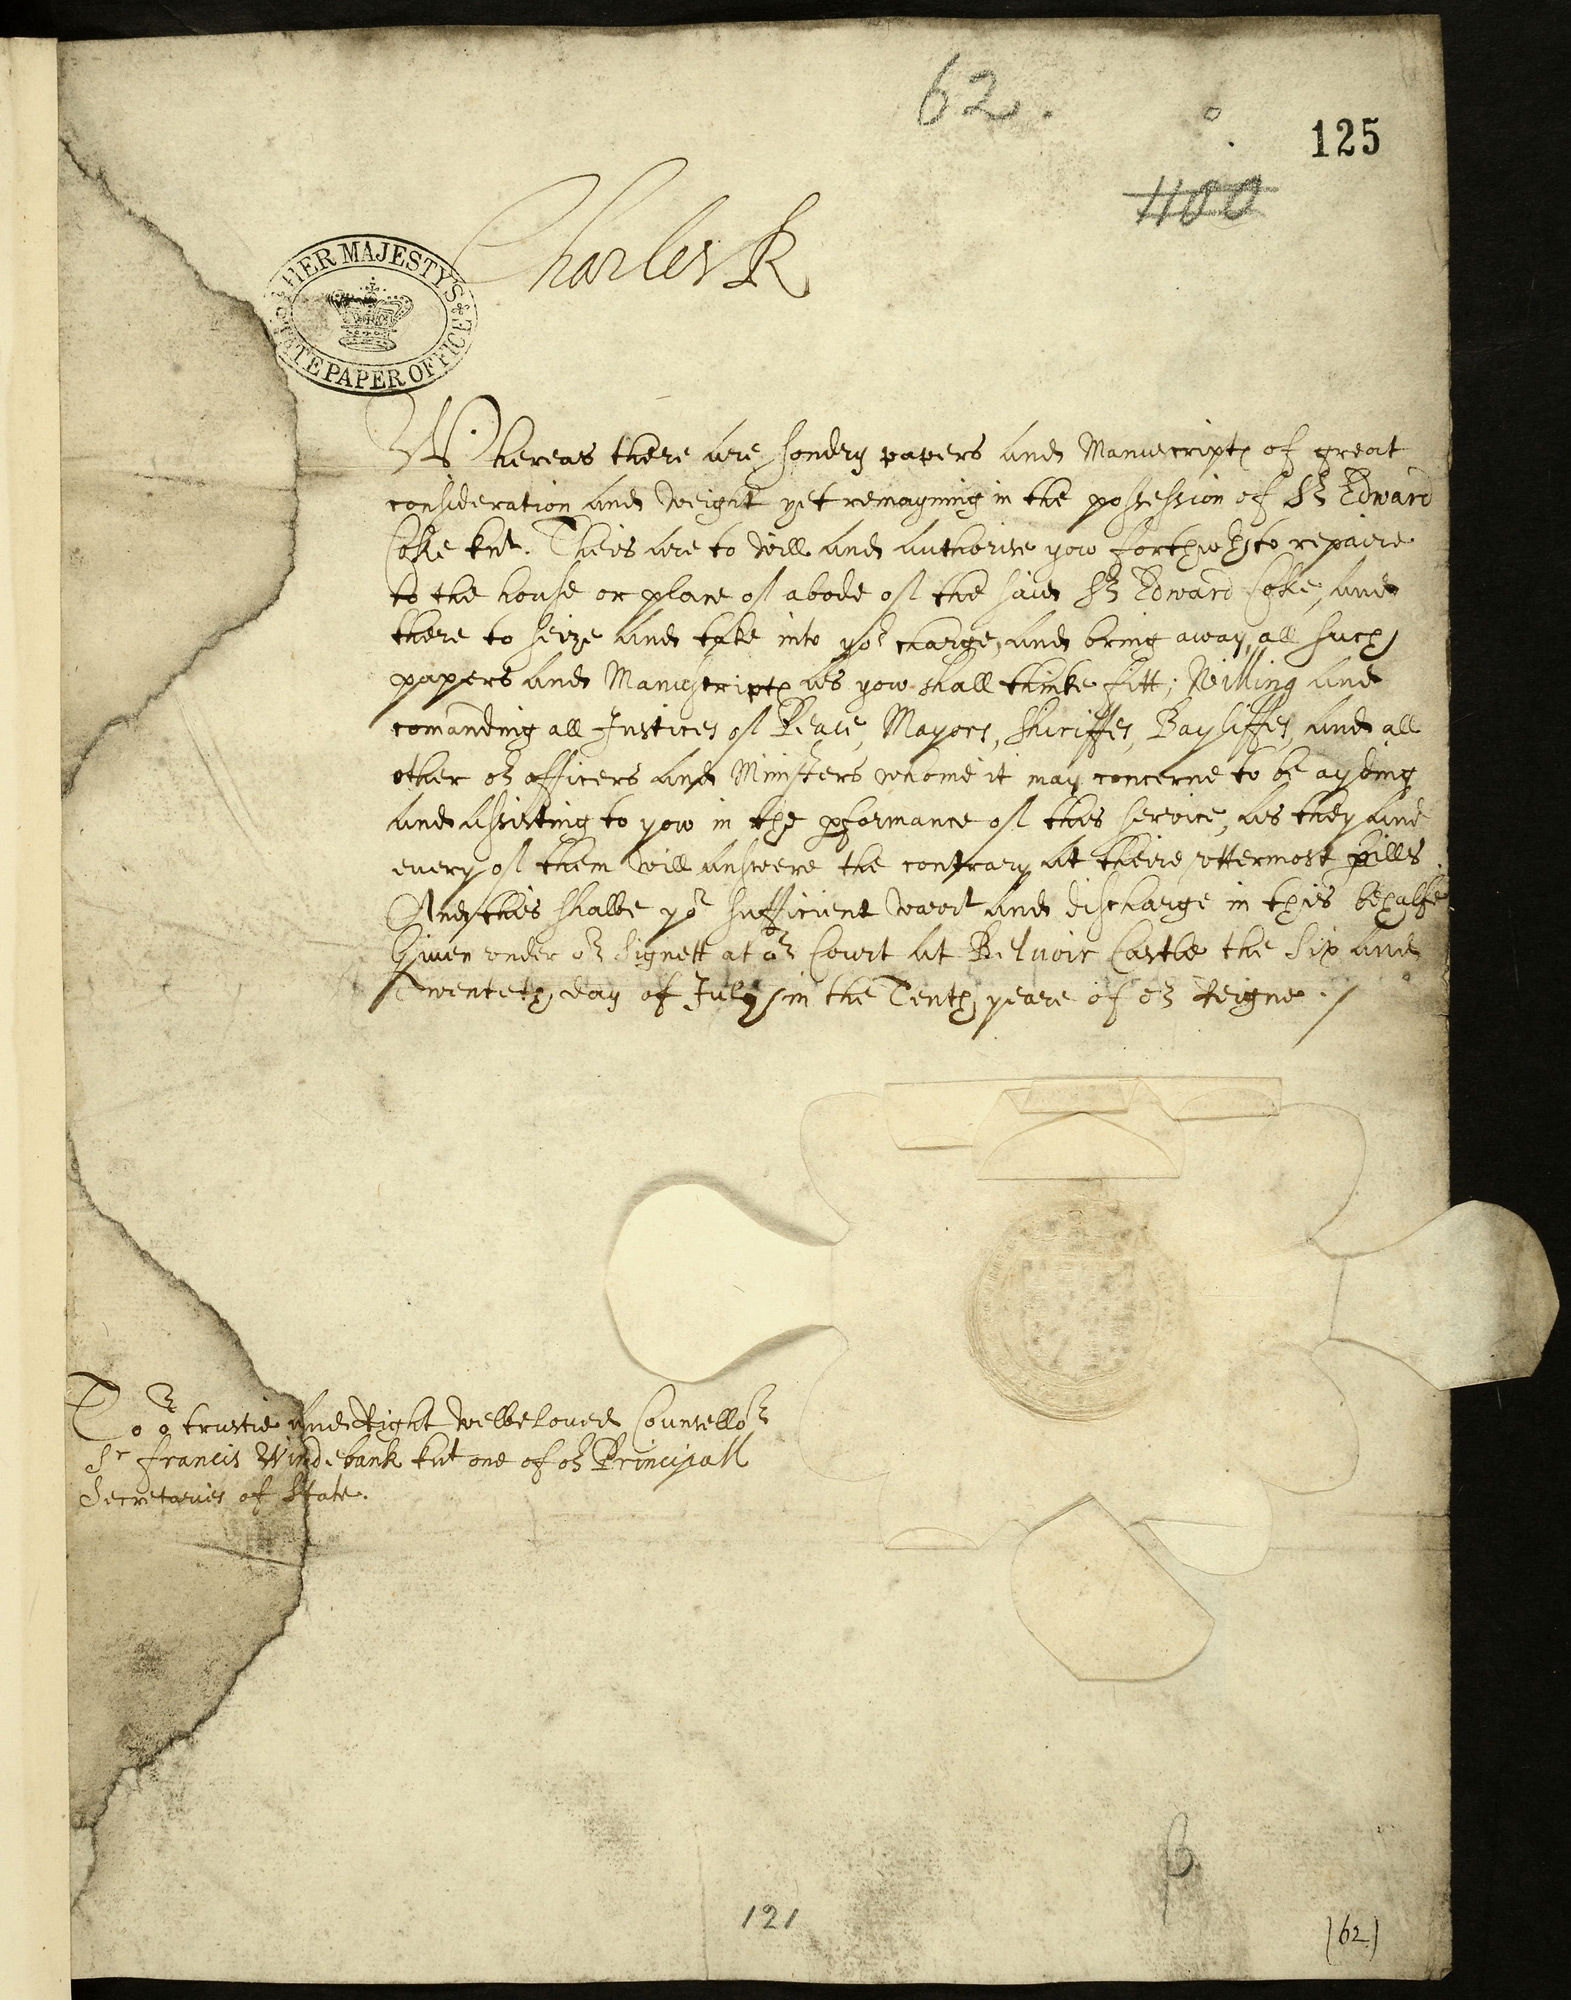 Letter of King Charles I ordering that Edward Coke's papers be confiscated